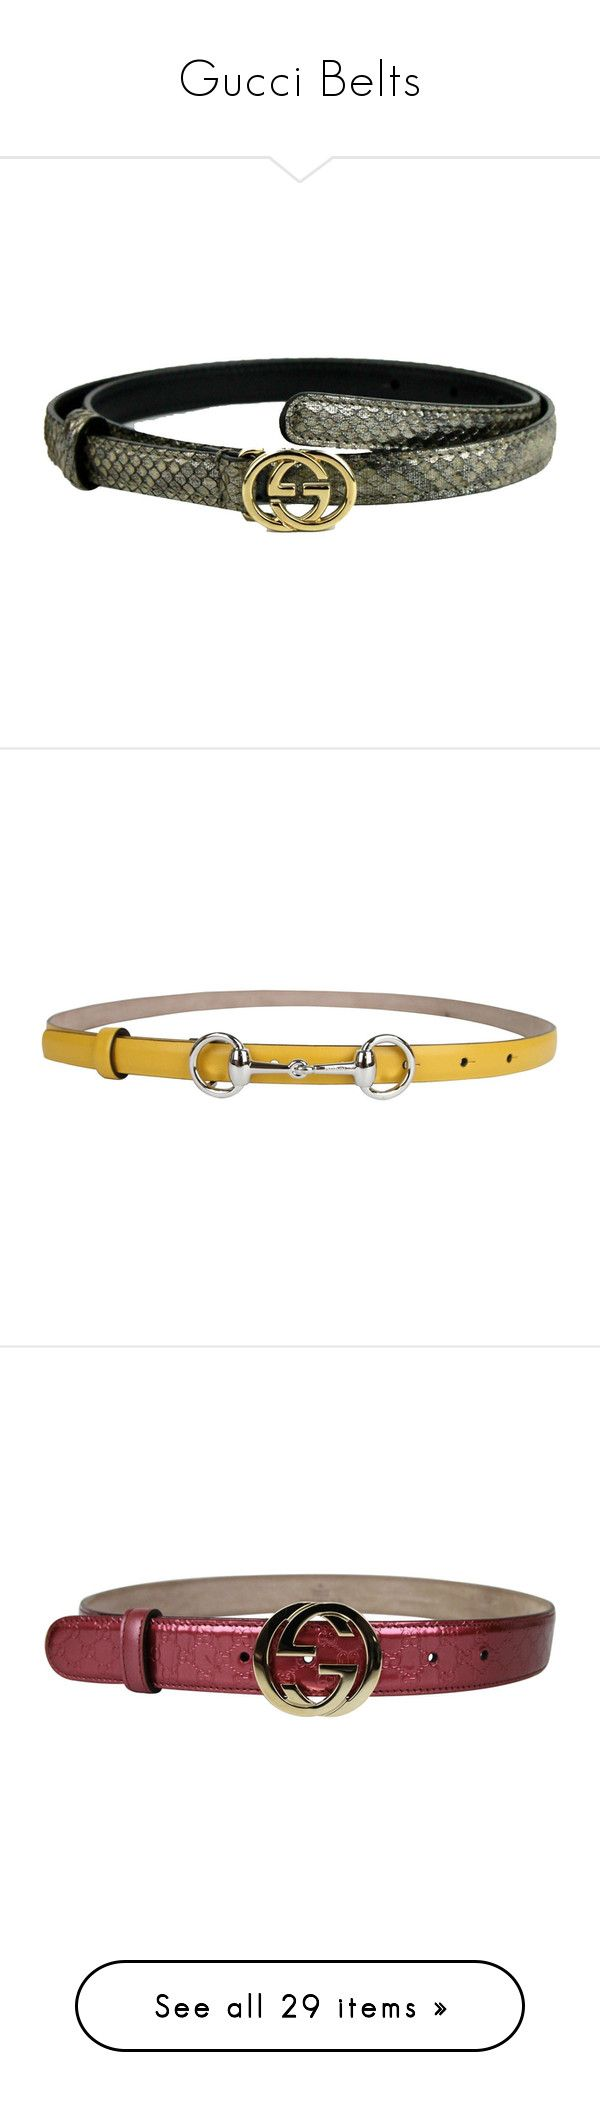 """""""Gucci Belts"""" by snobswap ❤ liked on Polyvore featuring accessories, belts, gucci belt, buckle belt, thin silver belt, skinny belts, gucci, thin belts, 100 leather belt and genuine leather belt"""